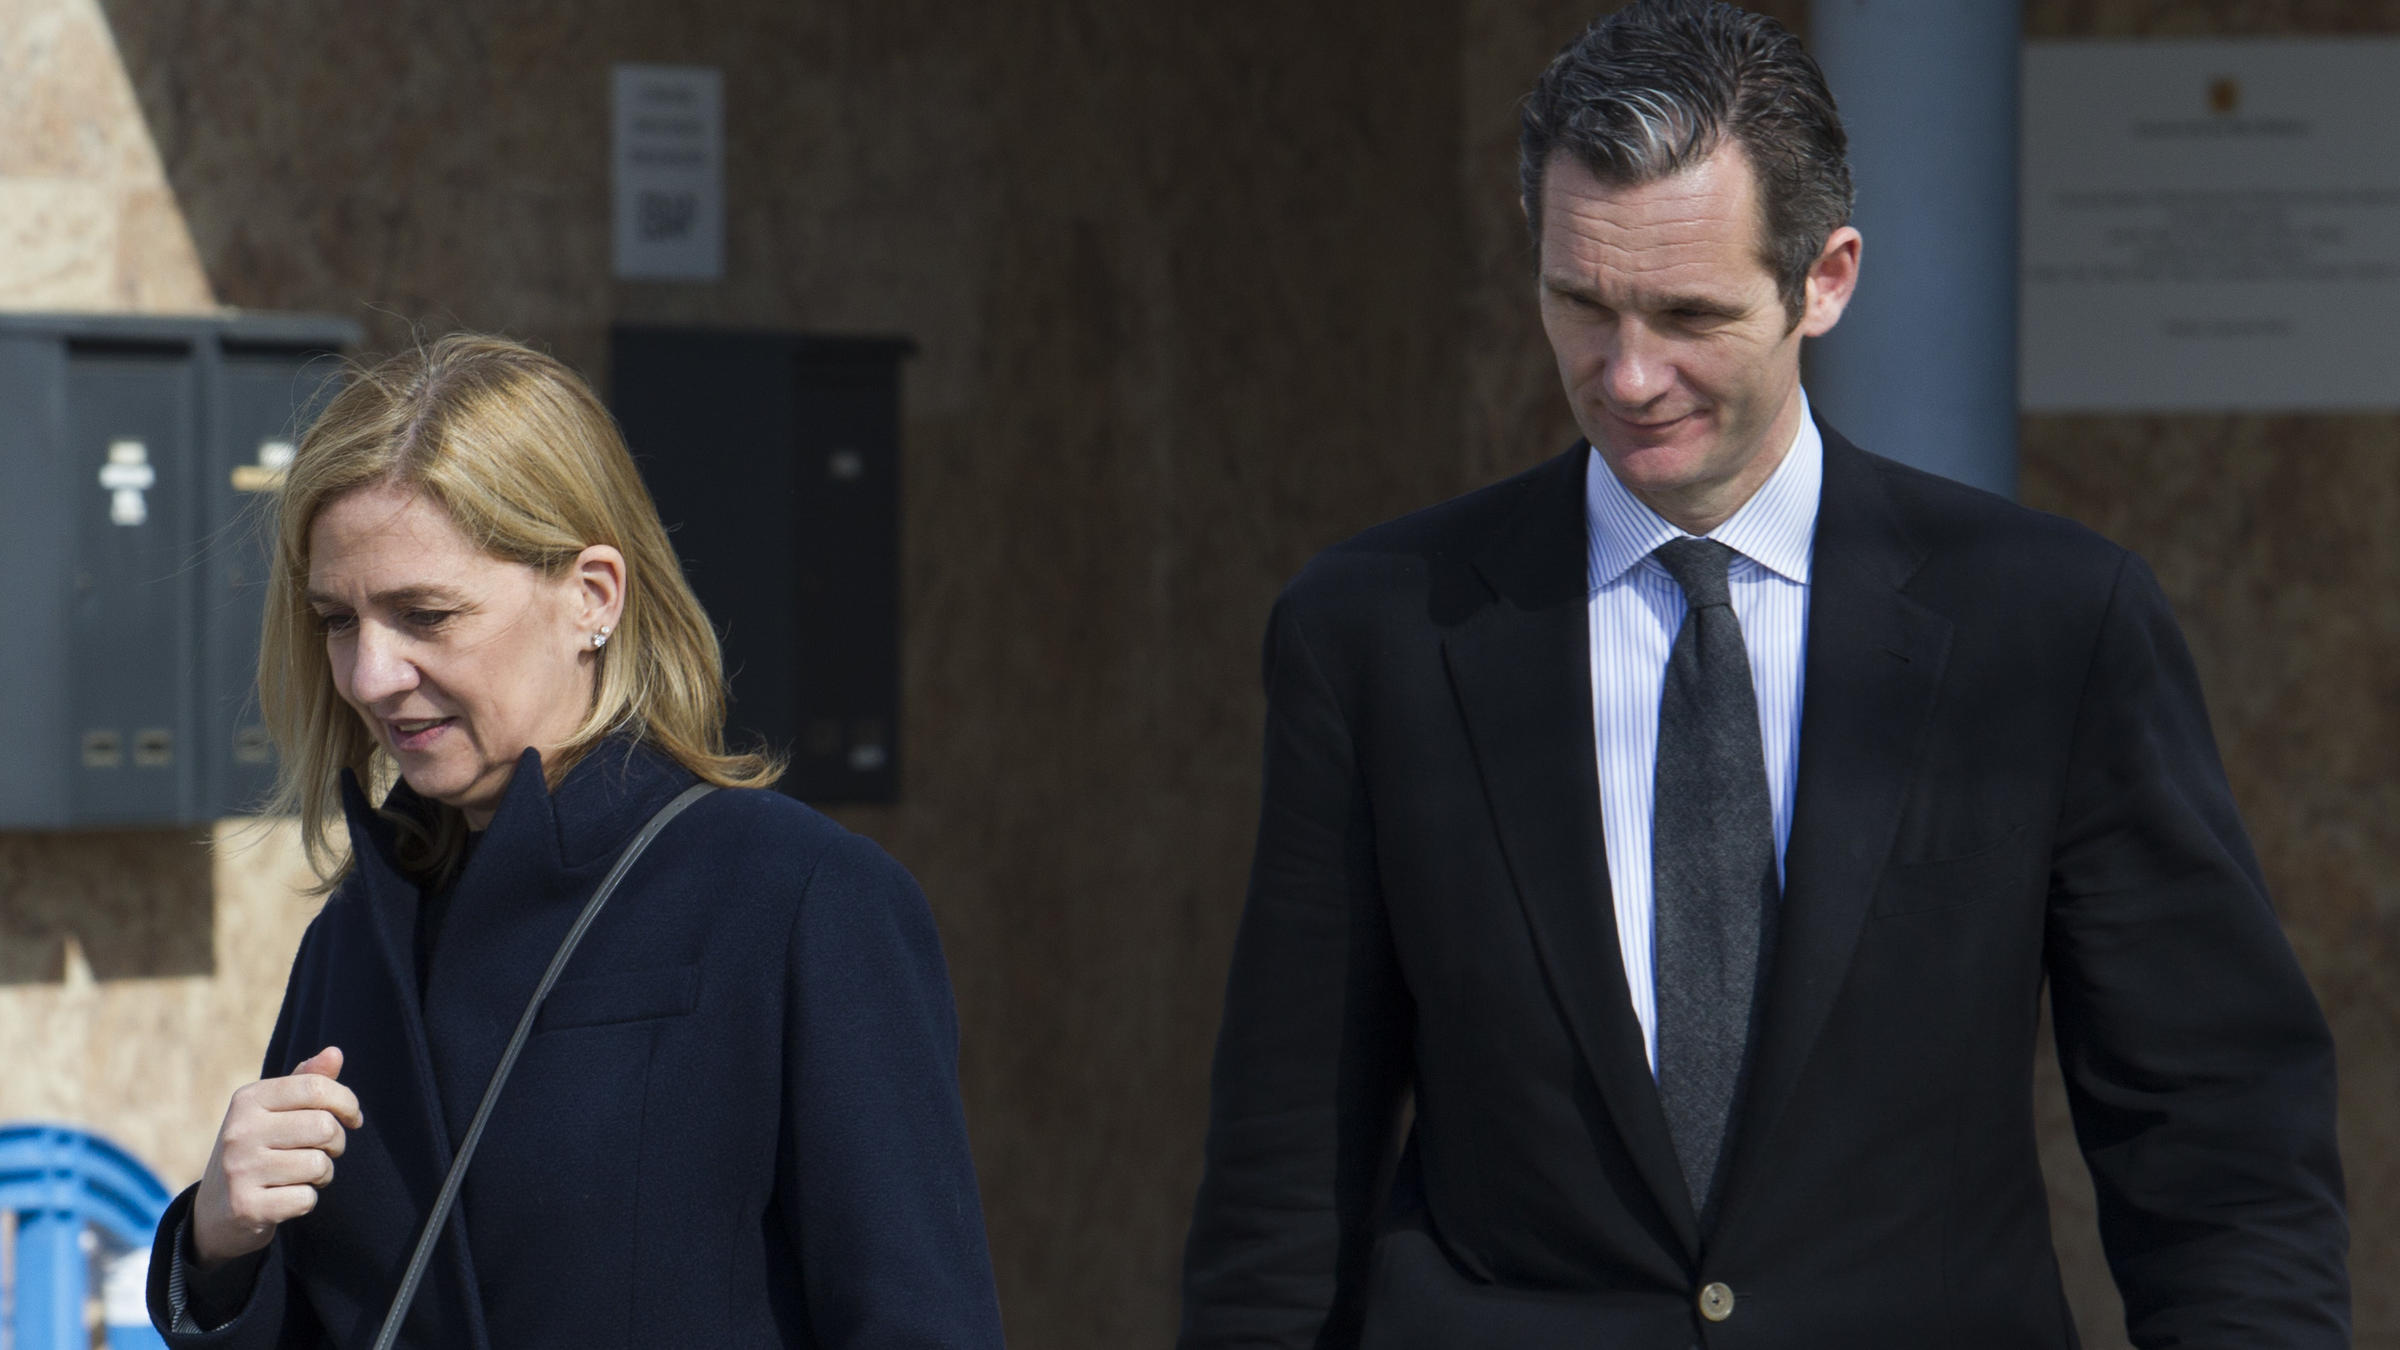 King Felipe's Brother-in-Law Guilty of Fraud, Infanta Cristina Acquitted - Court